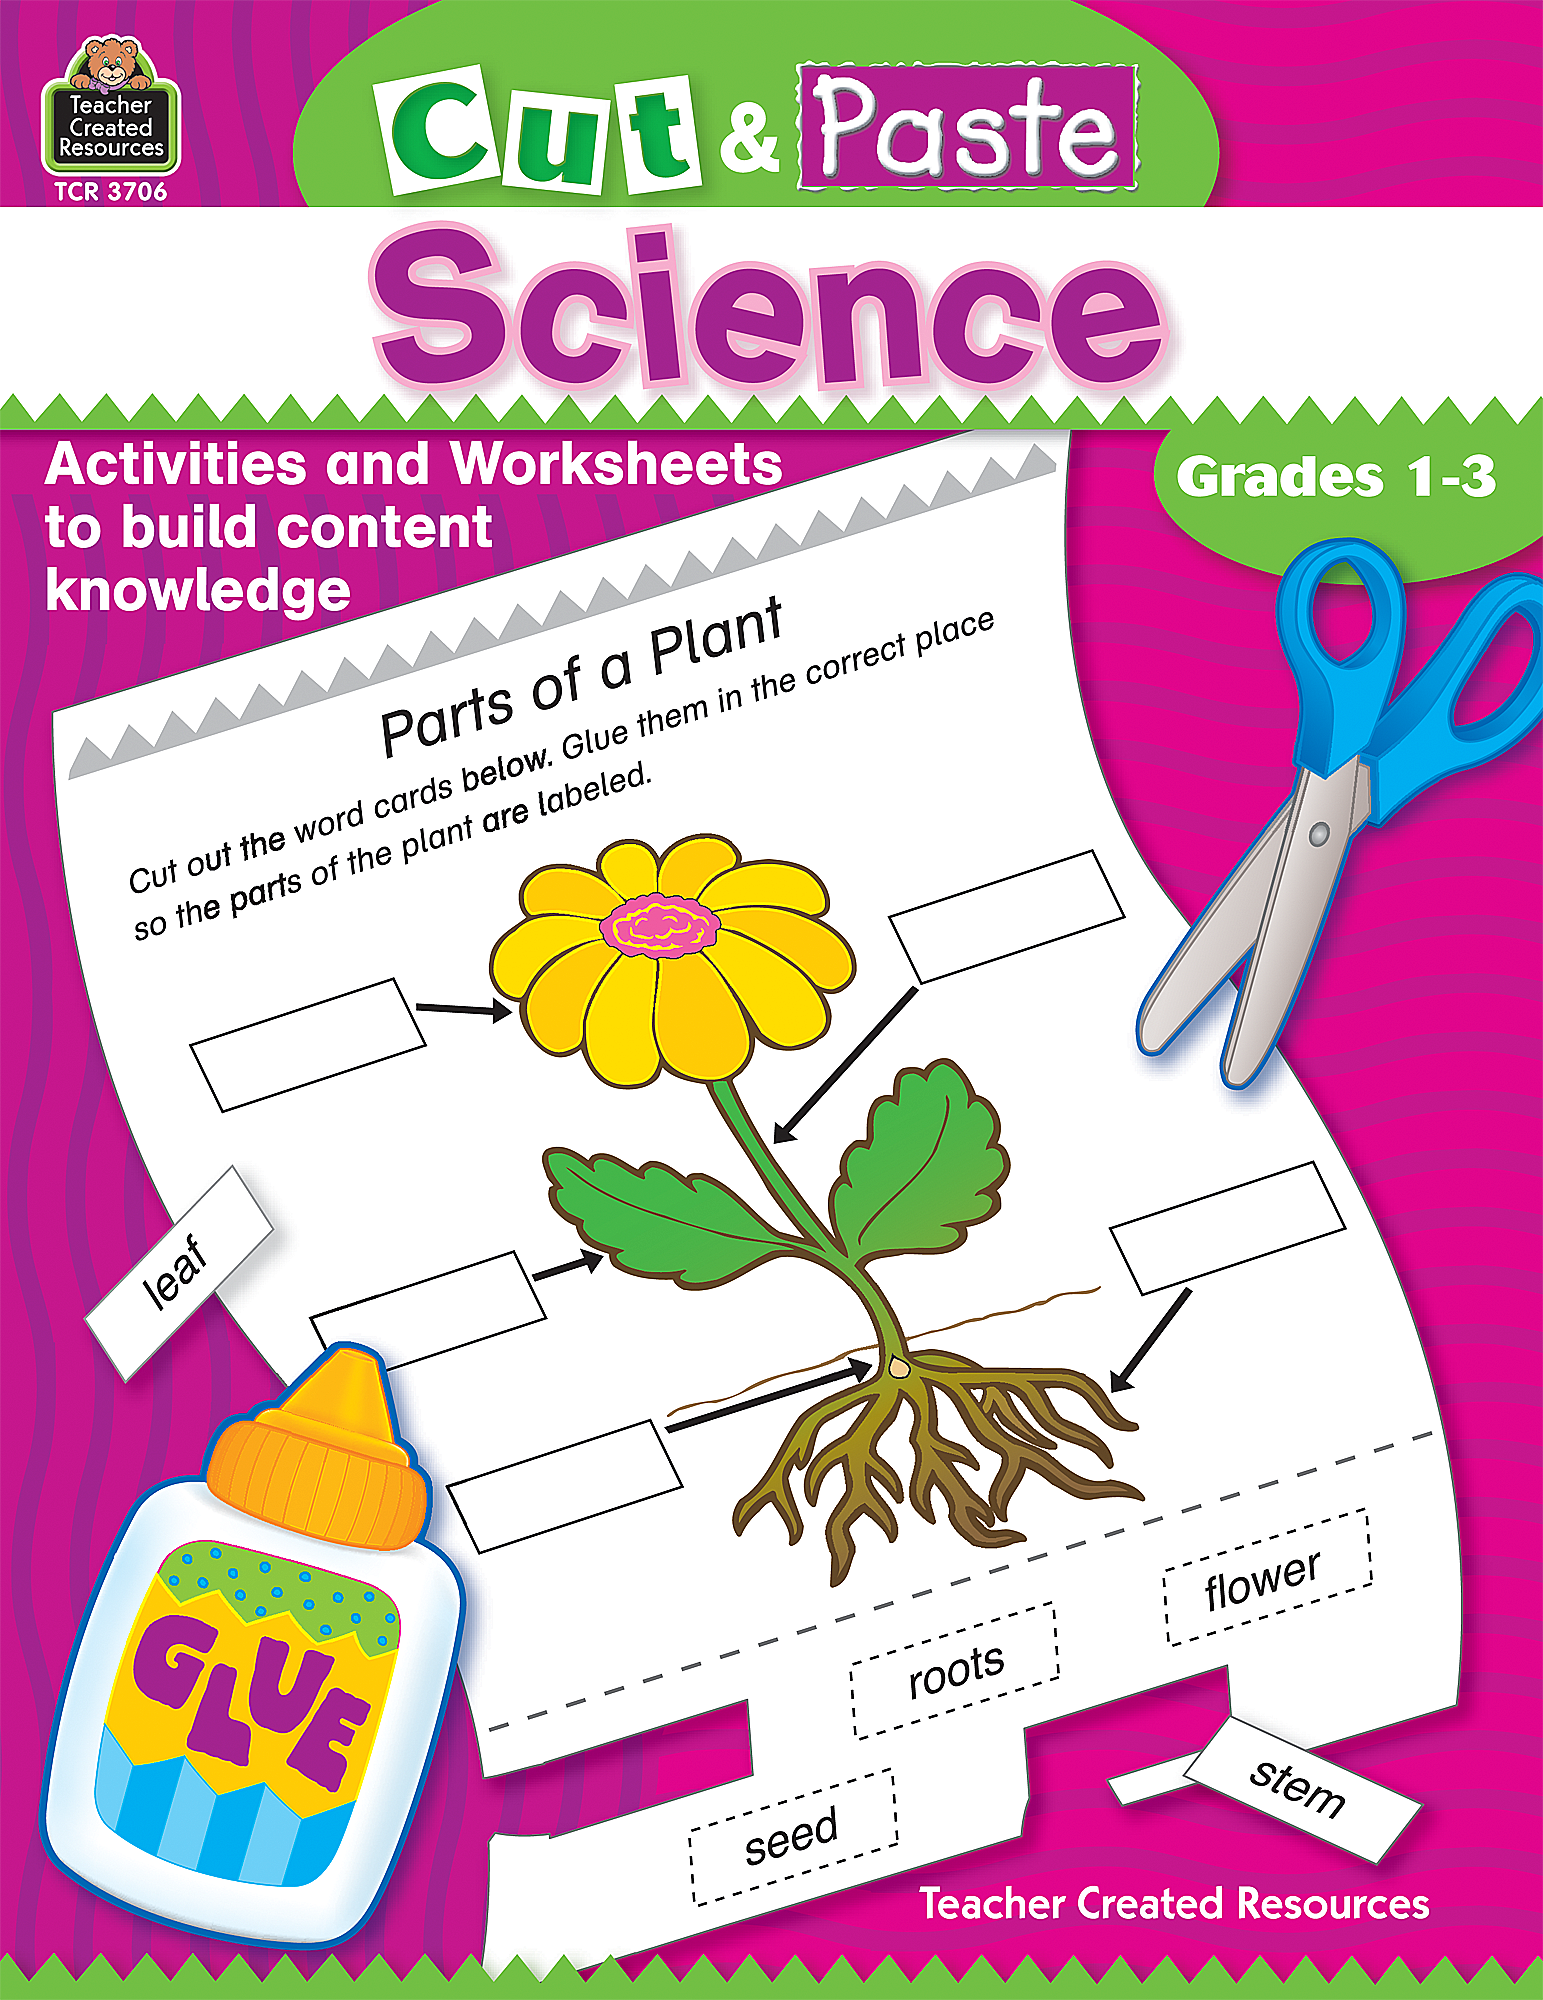 Worksheets Teacher Created Materials Inc Worksheets cut and paste science tcr3706 teacher created resources